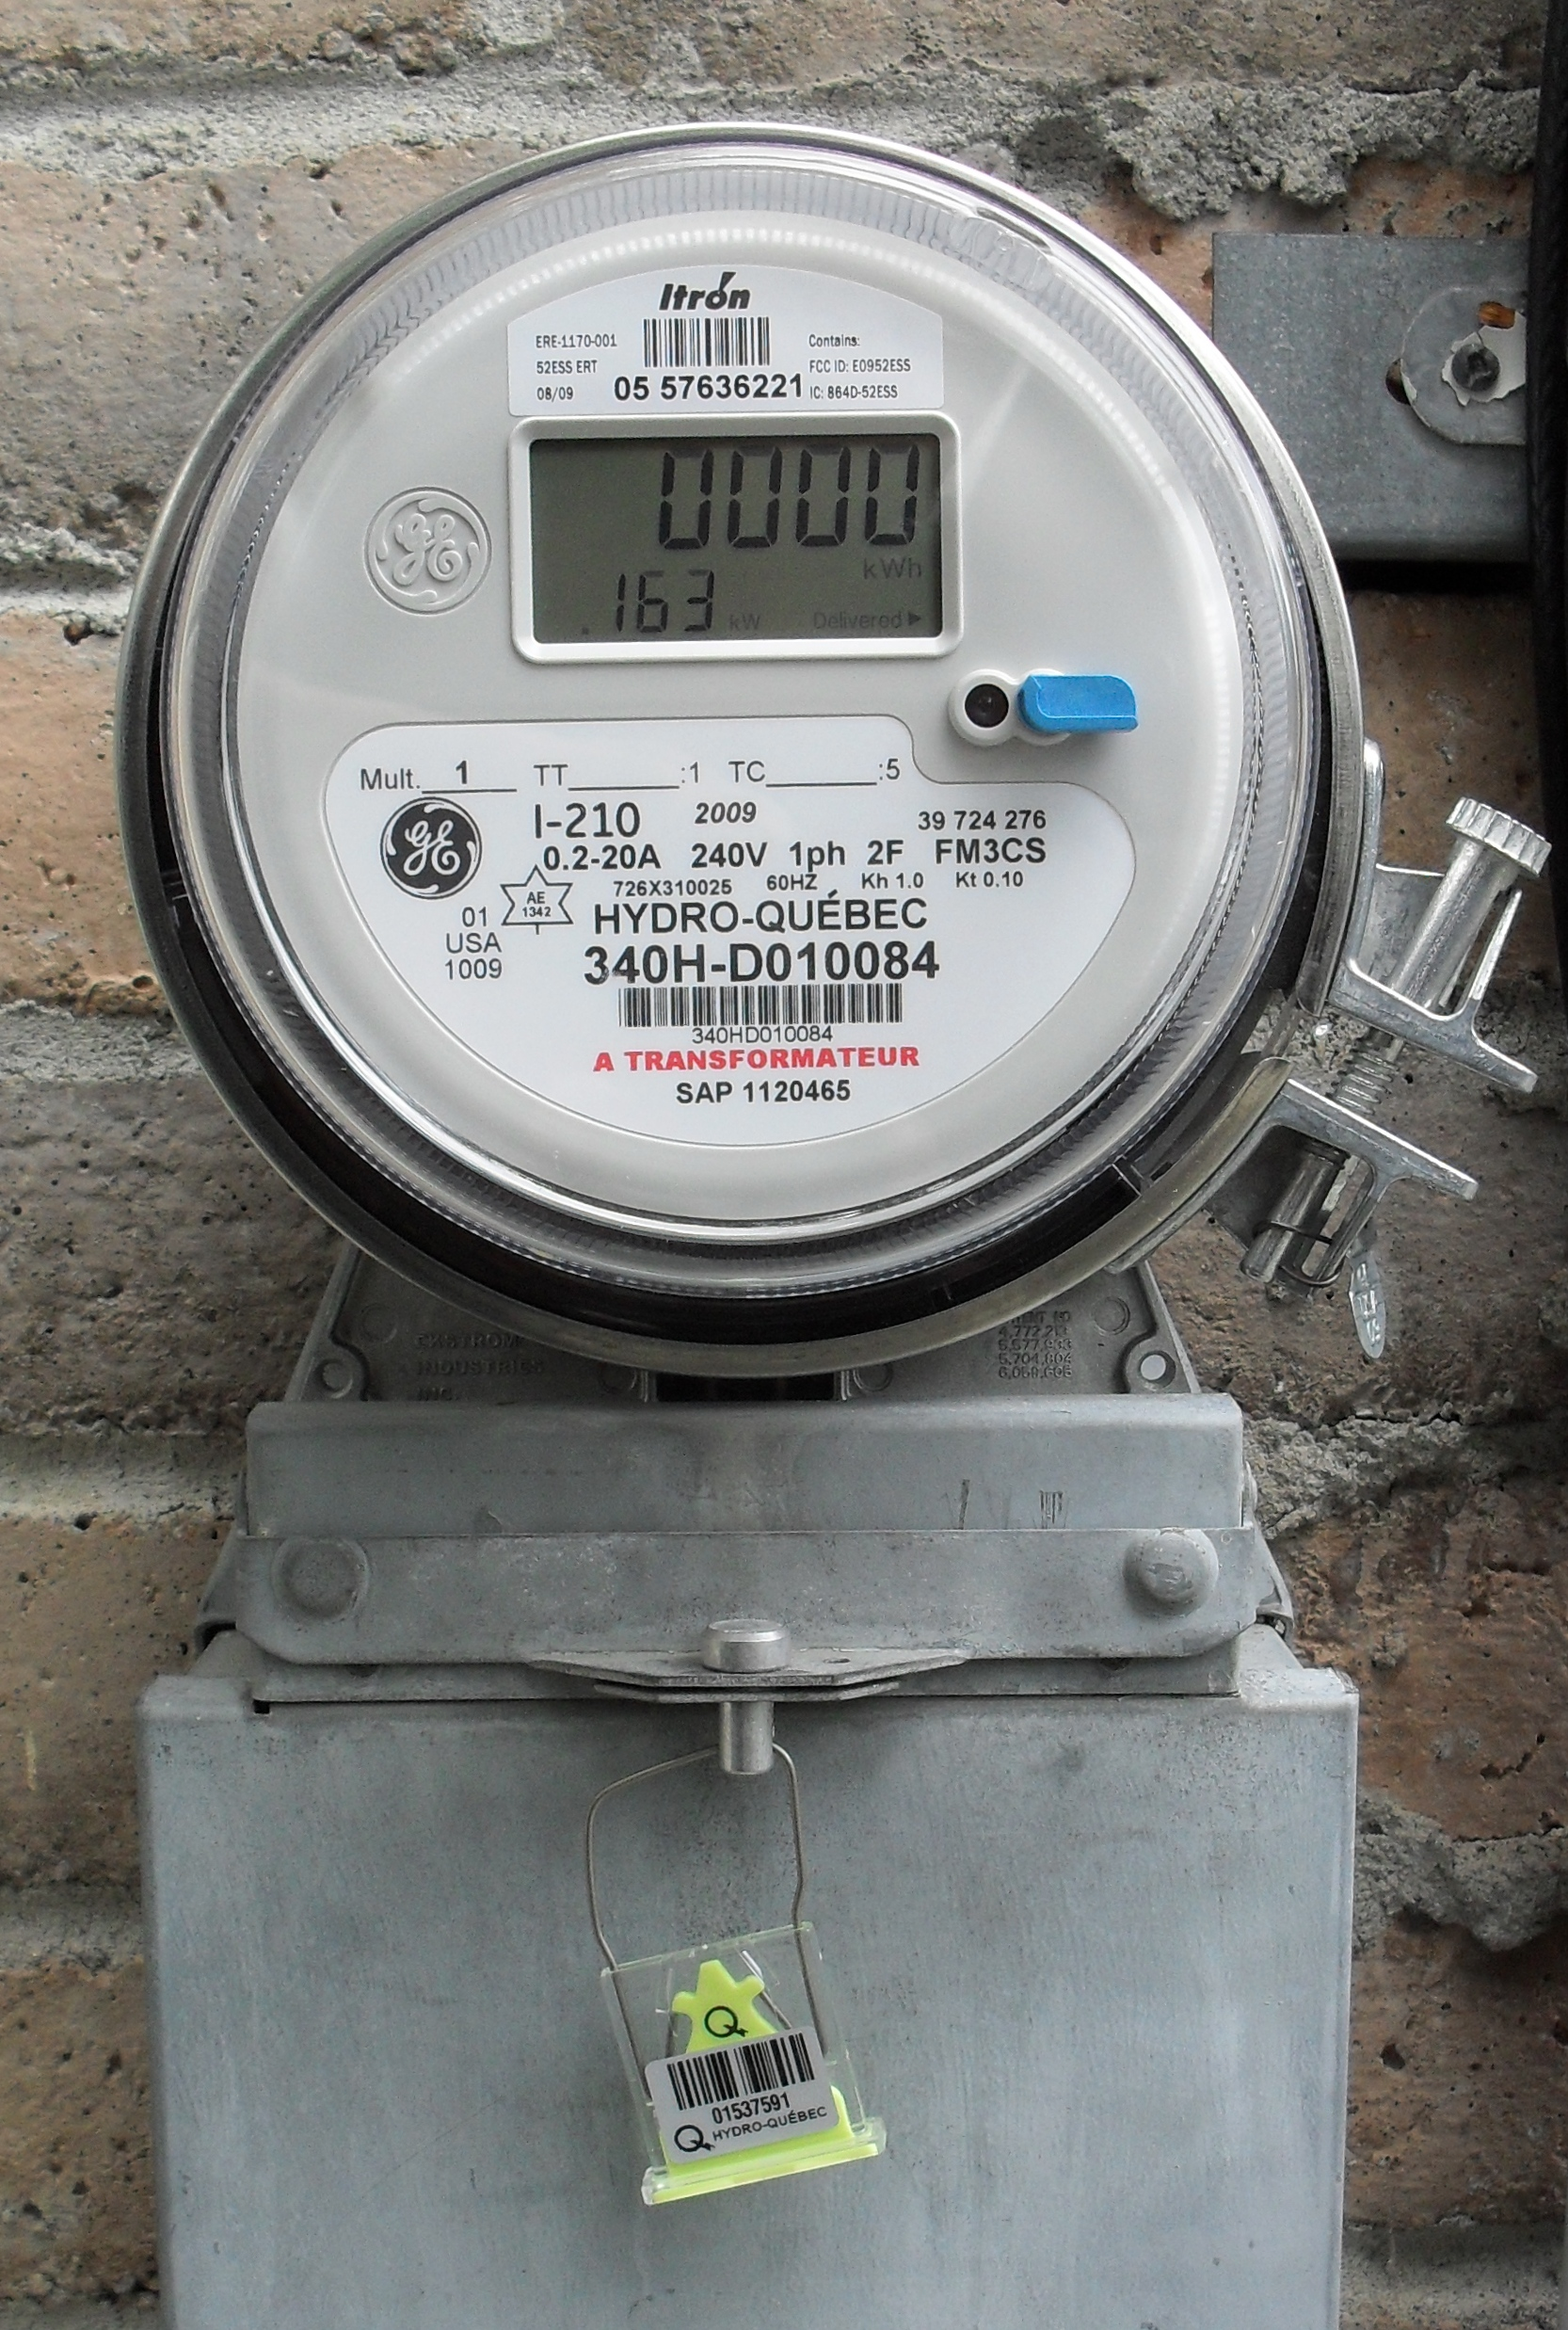 electricity meter north american domestic digital electricity meter